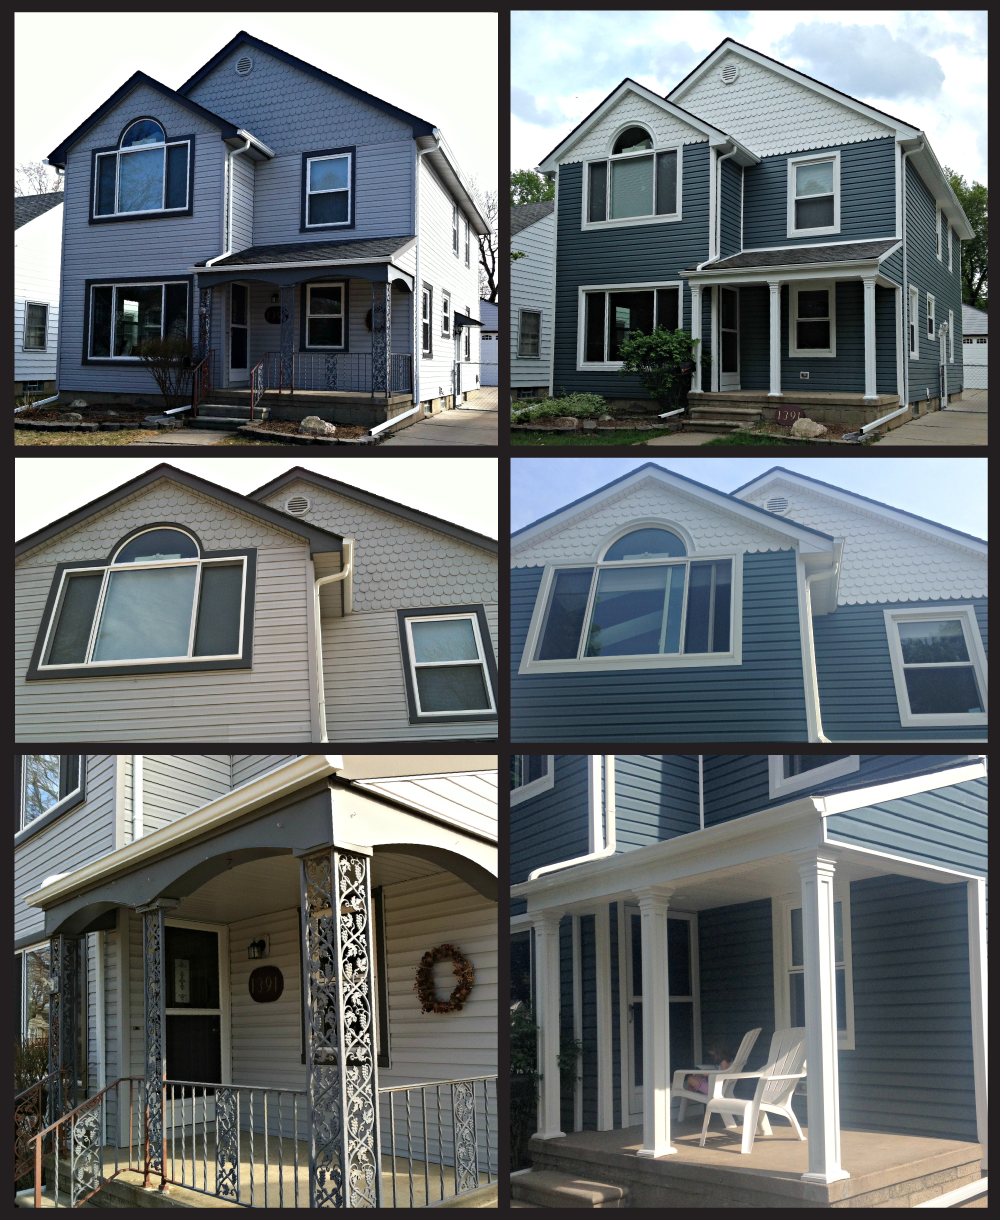 For The Hallgren House In Berkley Mi The Client Wanted To Update The Siding And Trim Without Losing The With Images White Vinyl Siding A Frame House Outside Paint Colors